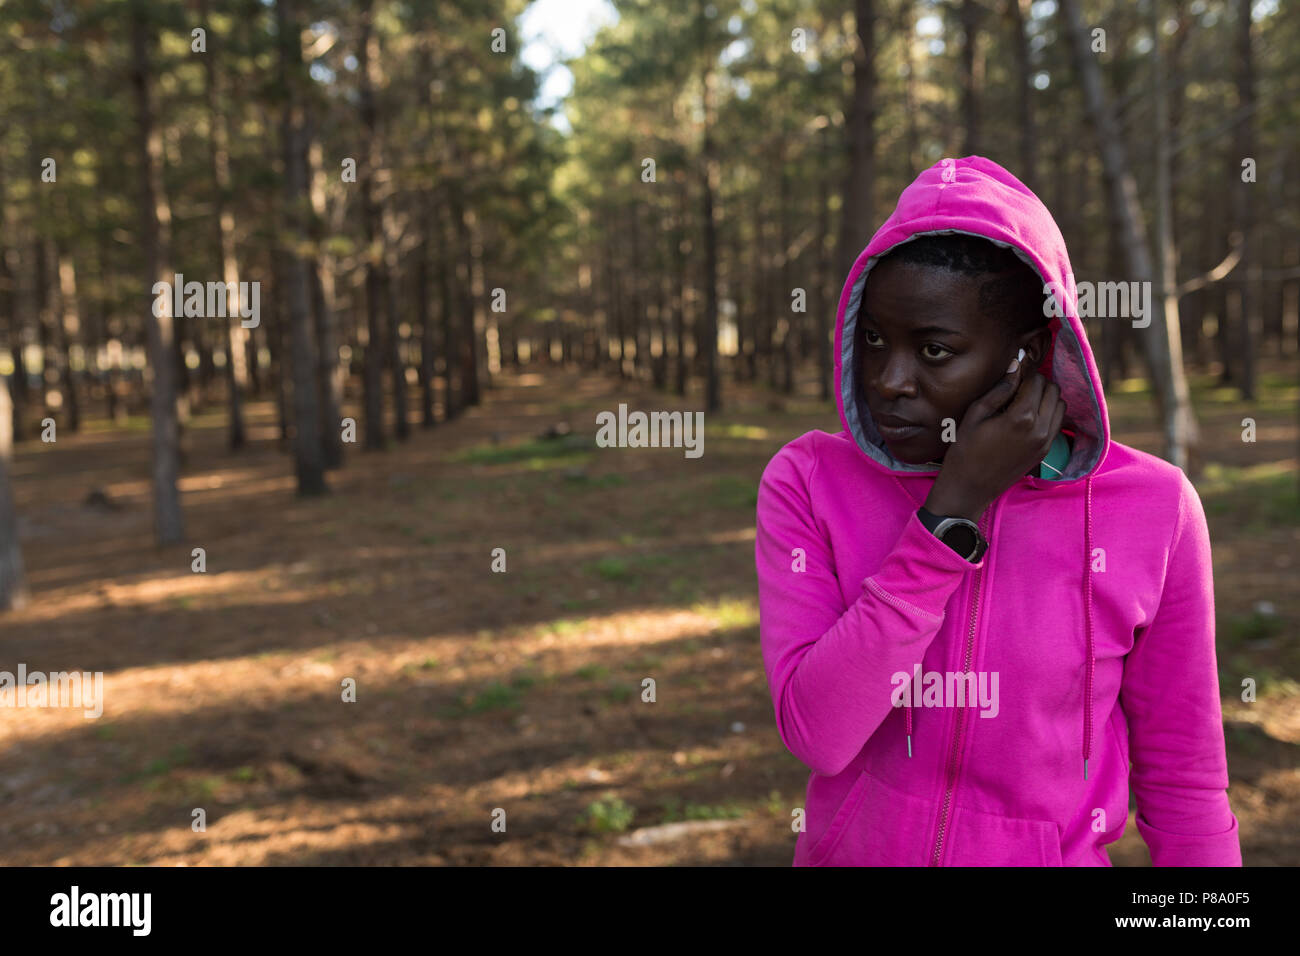 Female athlete in hooded jacket listening to music - Stock Image